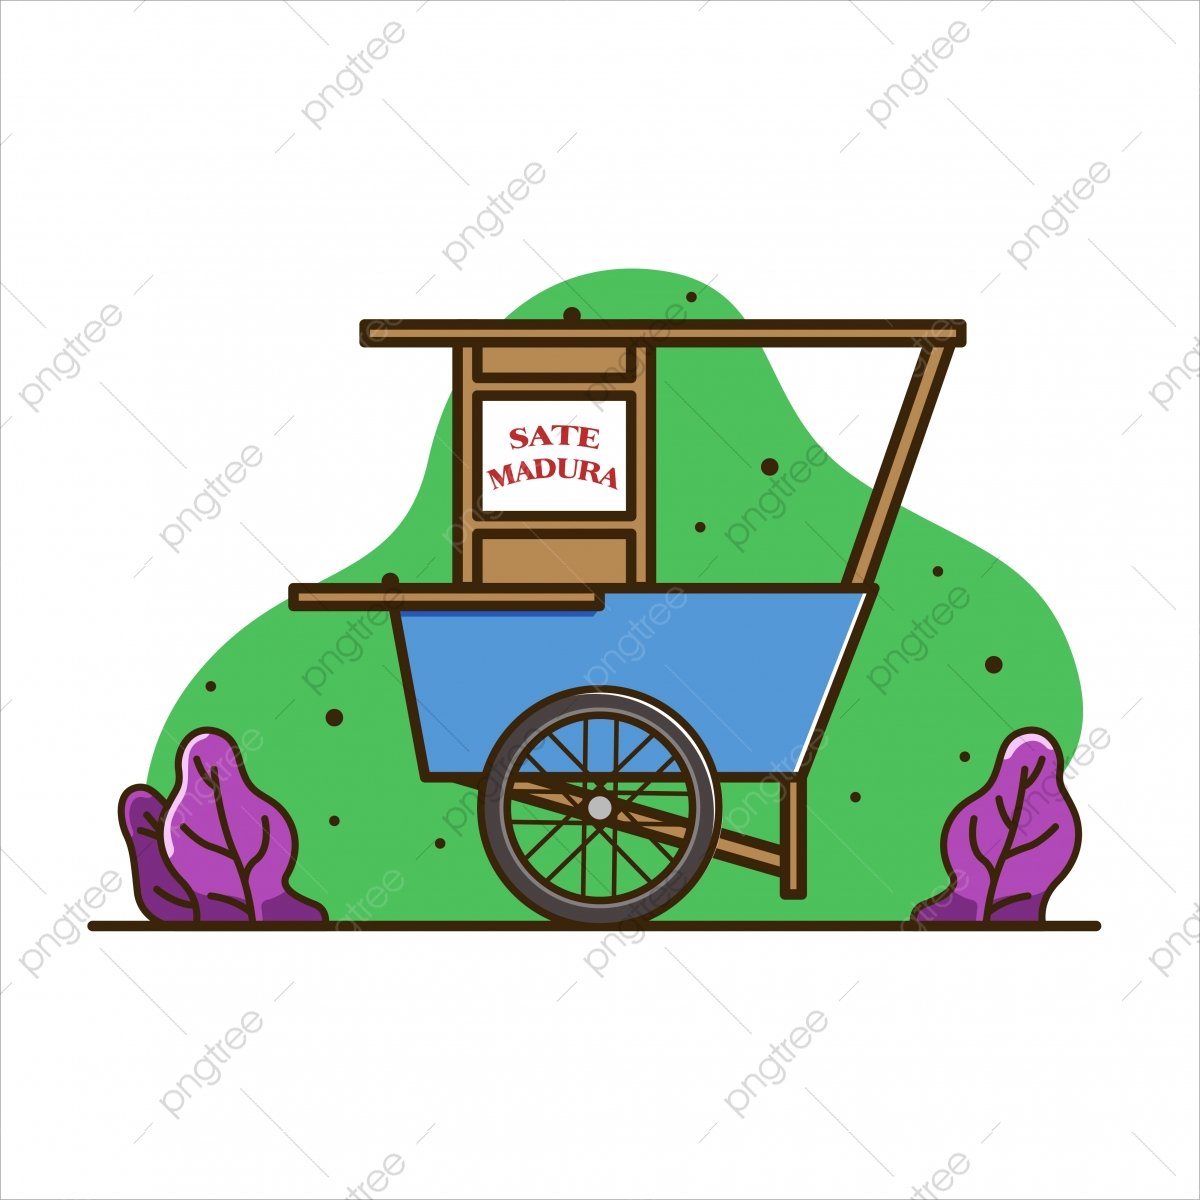 nusantara png images vector and psd files free download on pngtree https pngtree com freepng illustration of satay madura cart cart food illustration cart indonesia isolated vector 5295300 html